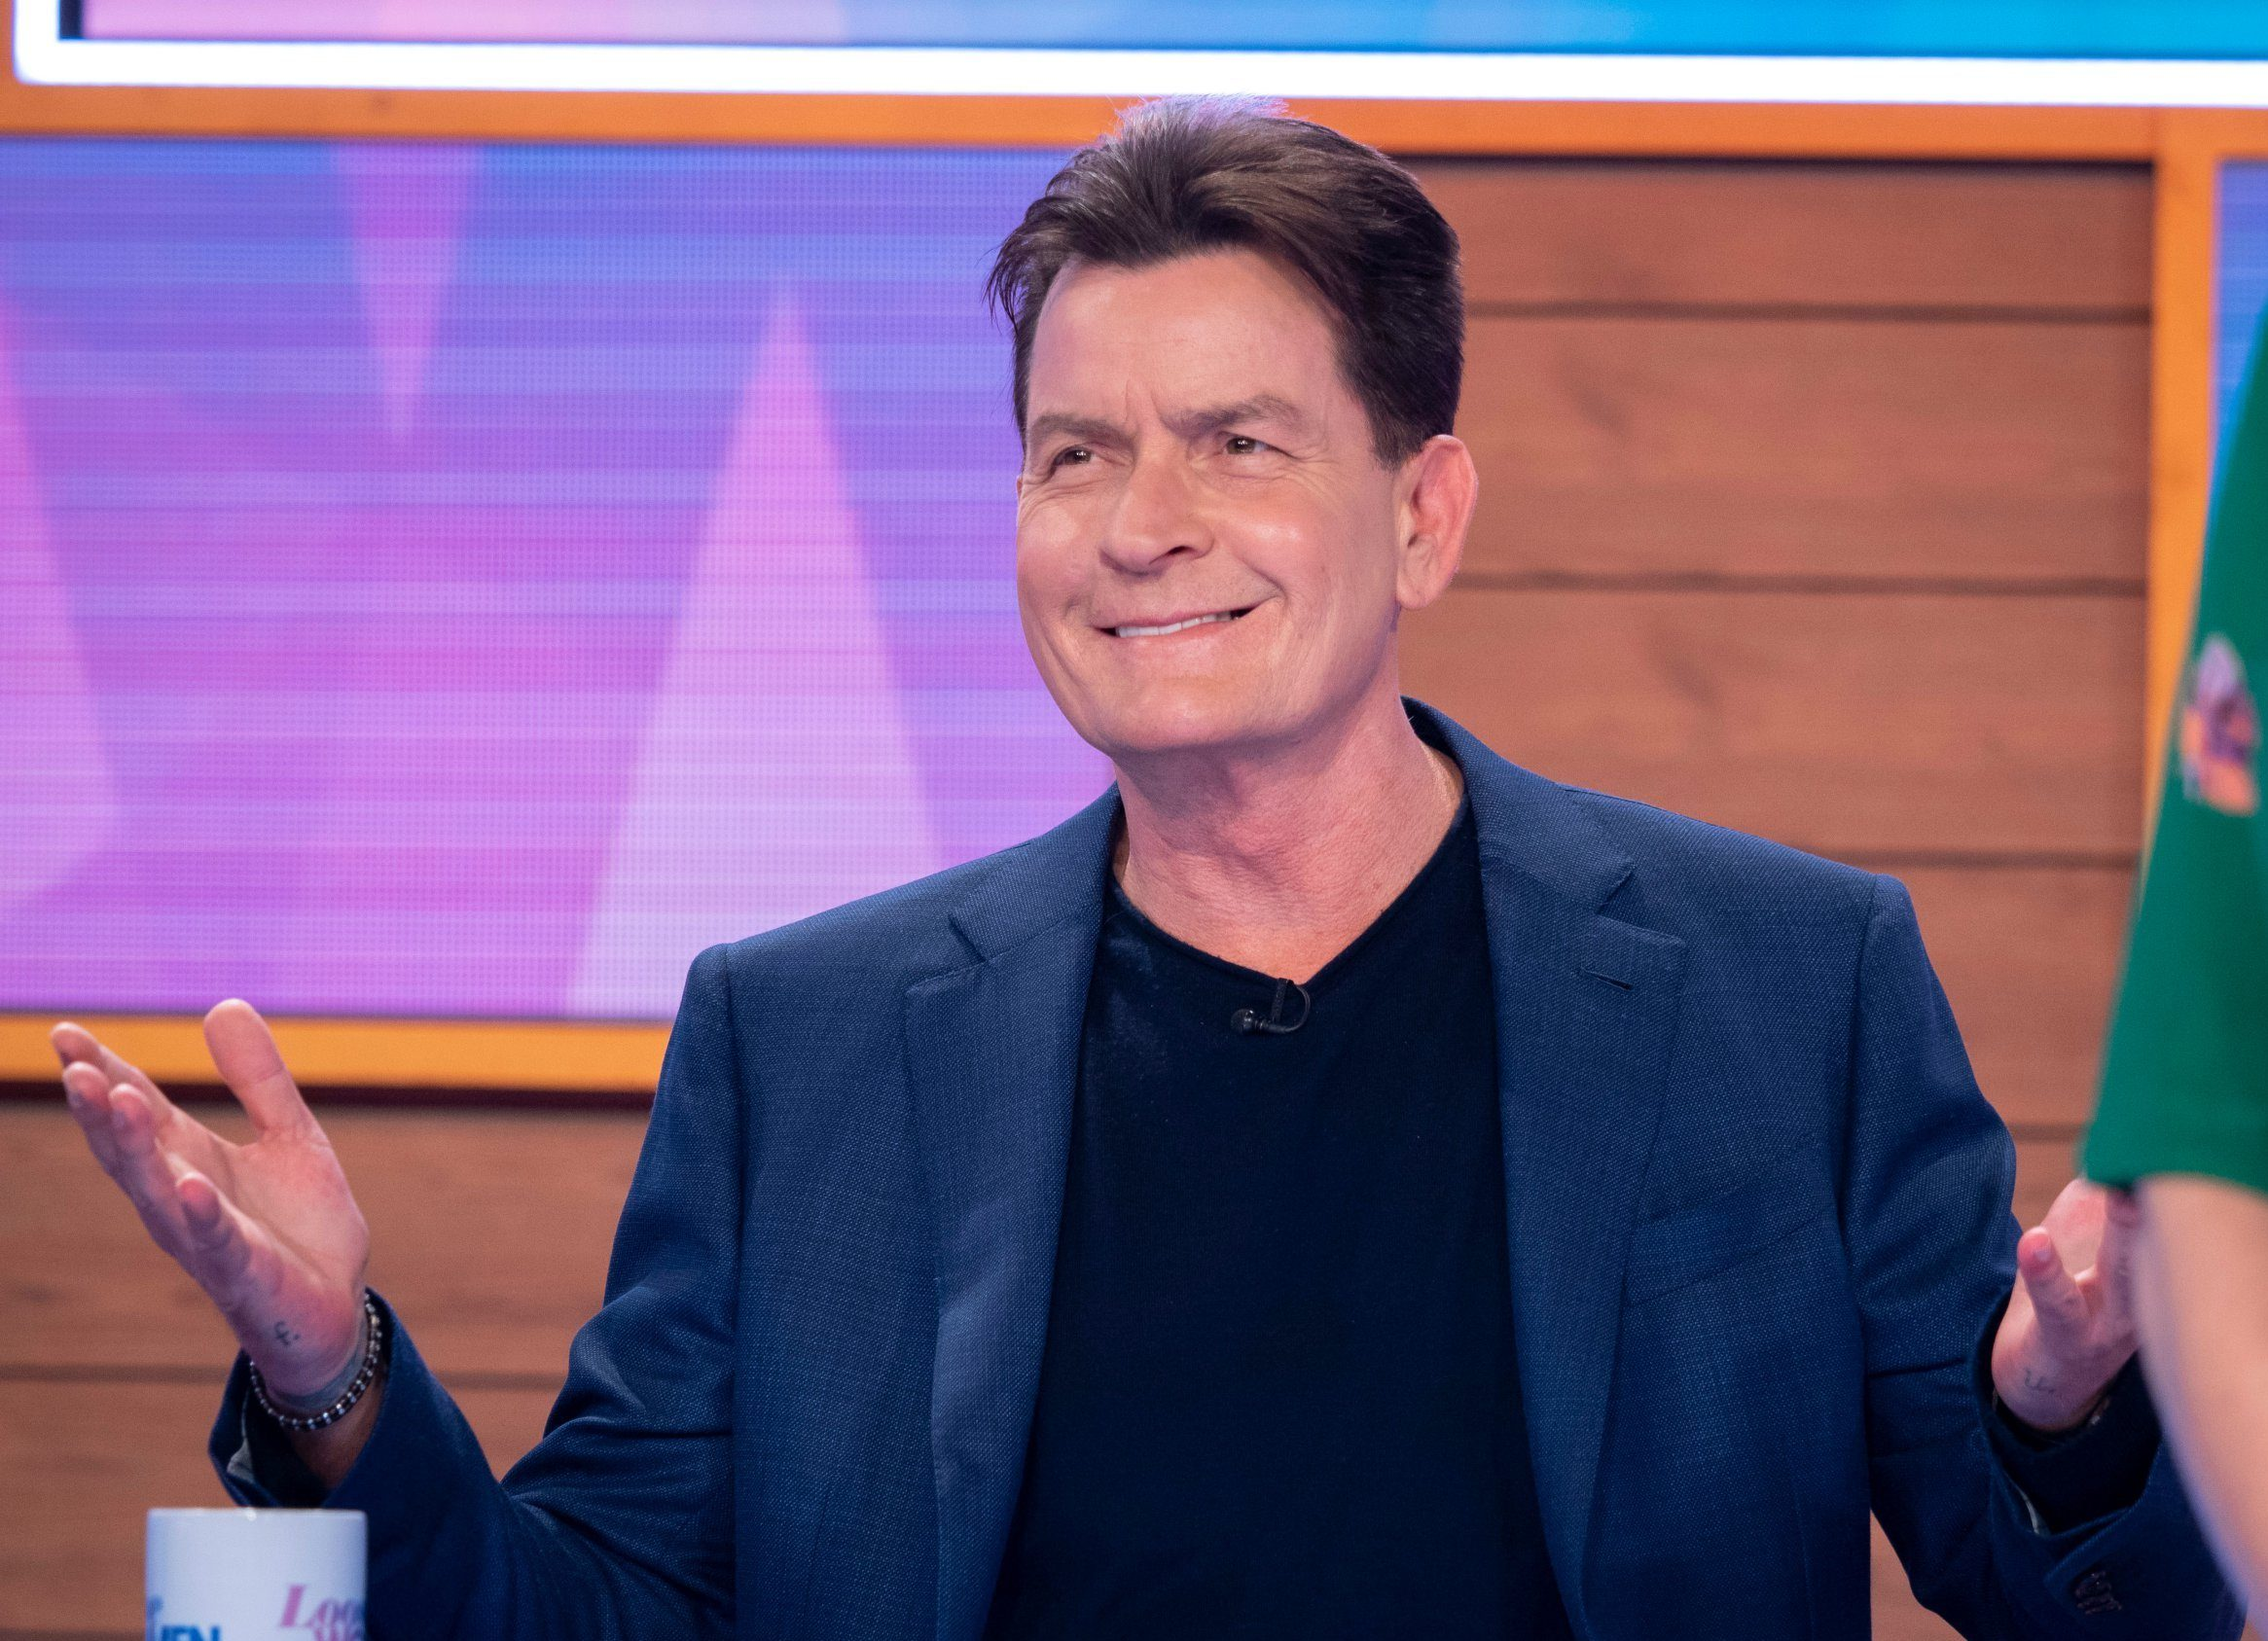 Editorial use only Mandatory Credit: Photo by Ken McKay/ITV/REX (10199613h) Charlie Sheen 'Loose Women' TV show, London, UK - 11 Apr 2019